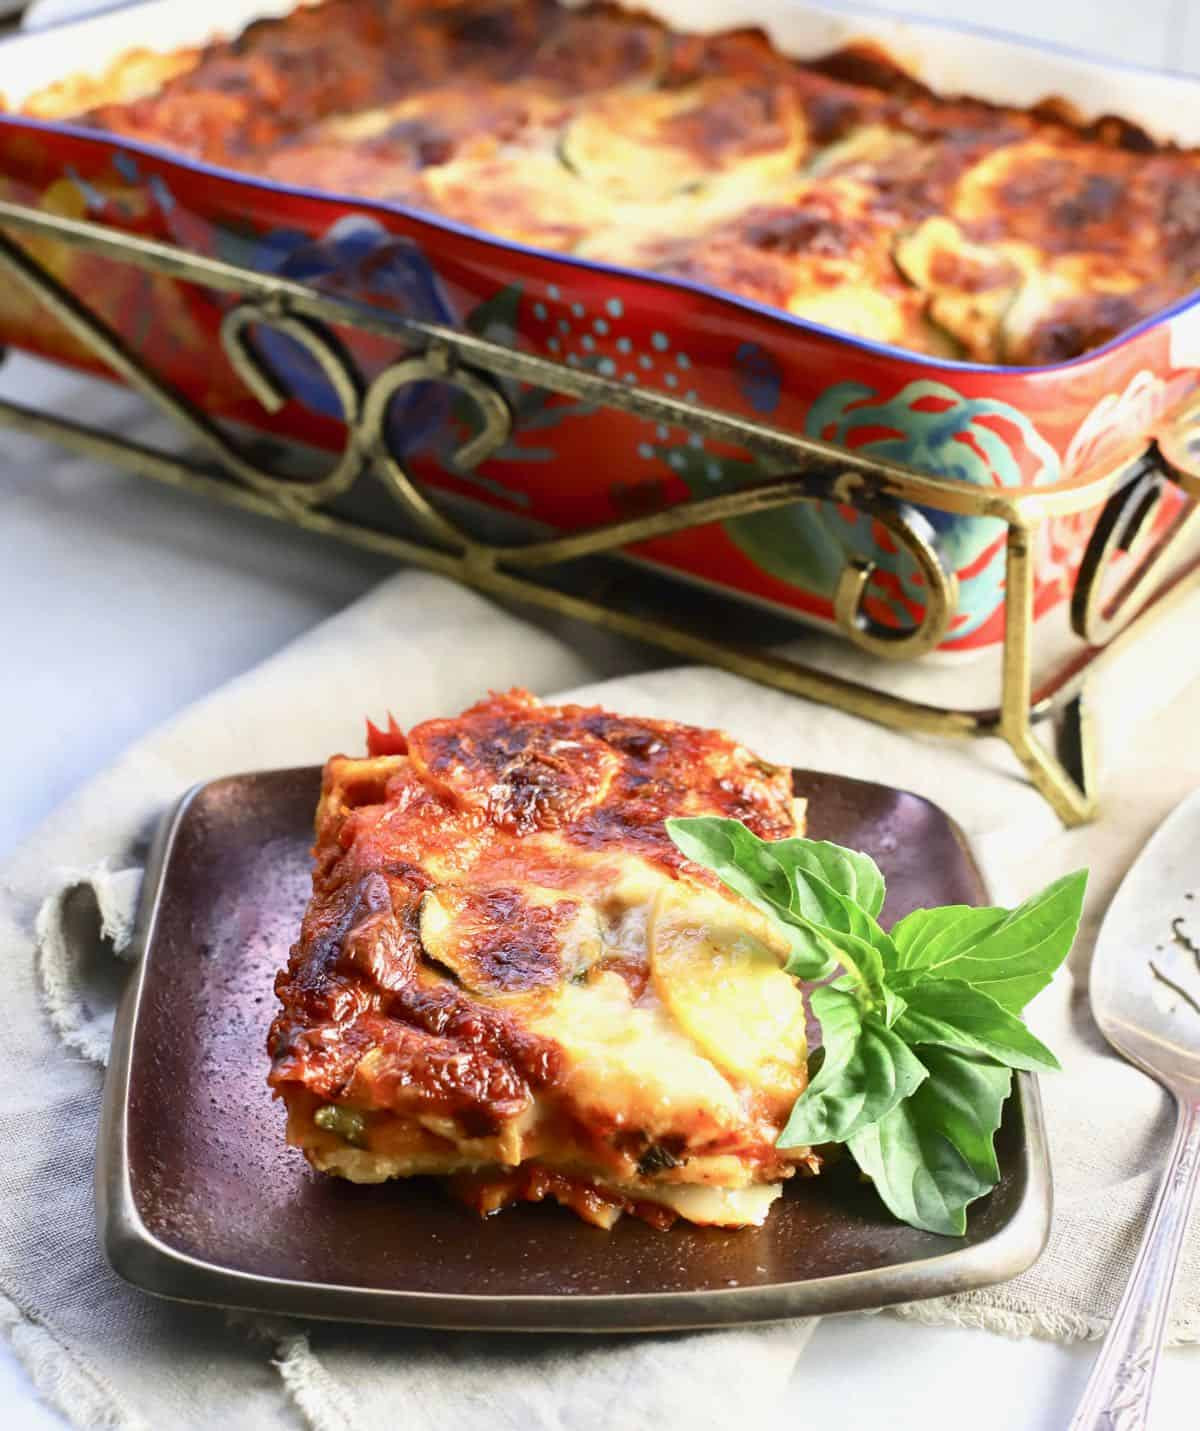 A pan of baked vegetable lasagna with a serving cut out.